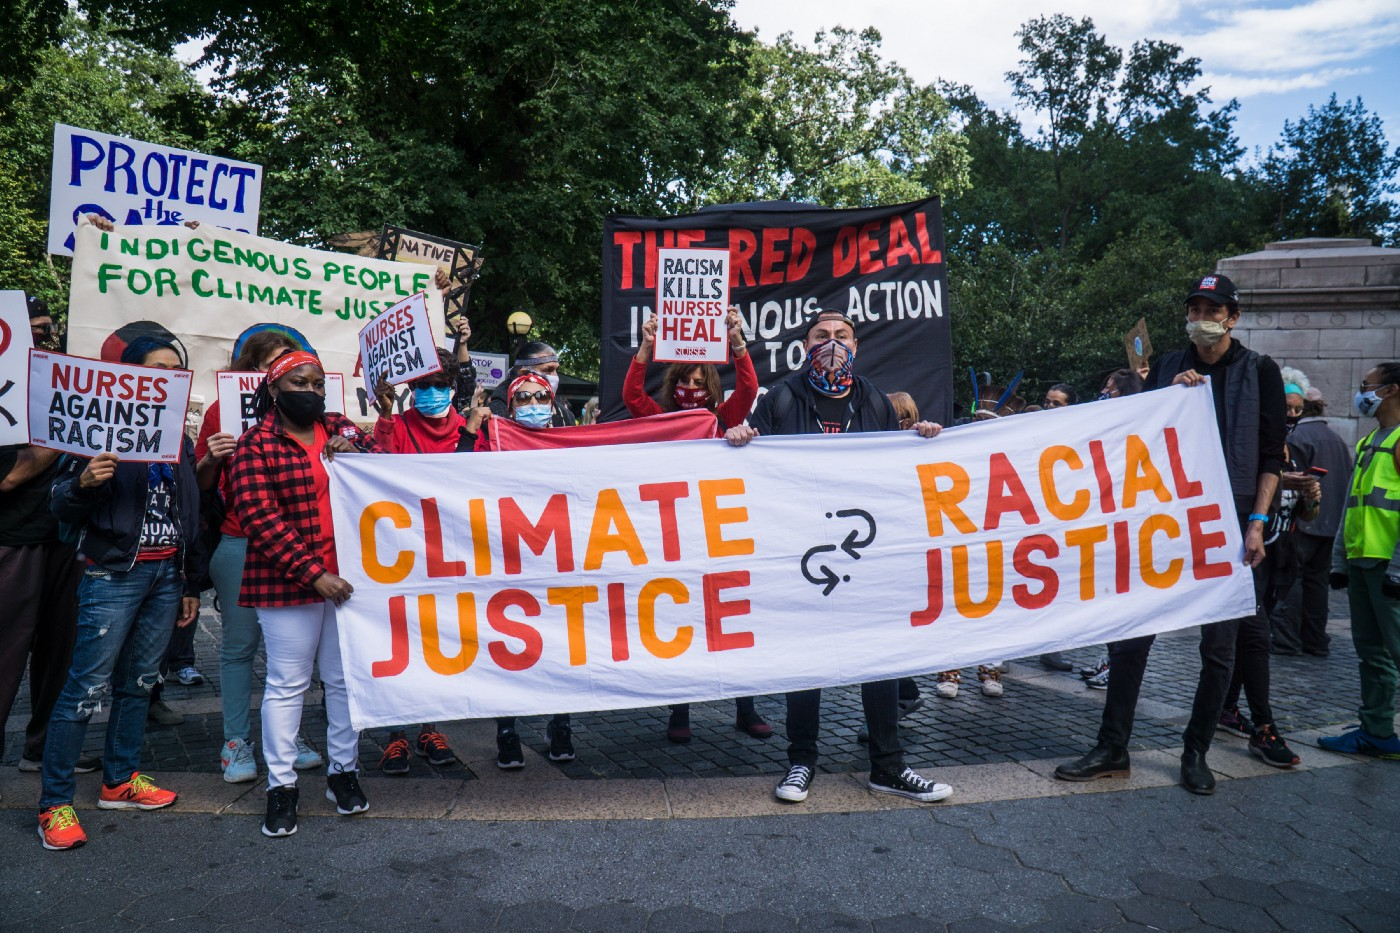 Rise and Resist activist group marched together to demand climate and racial justice.